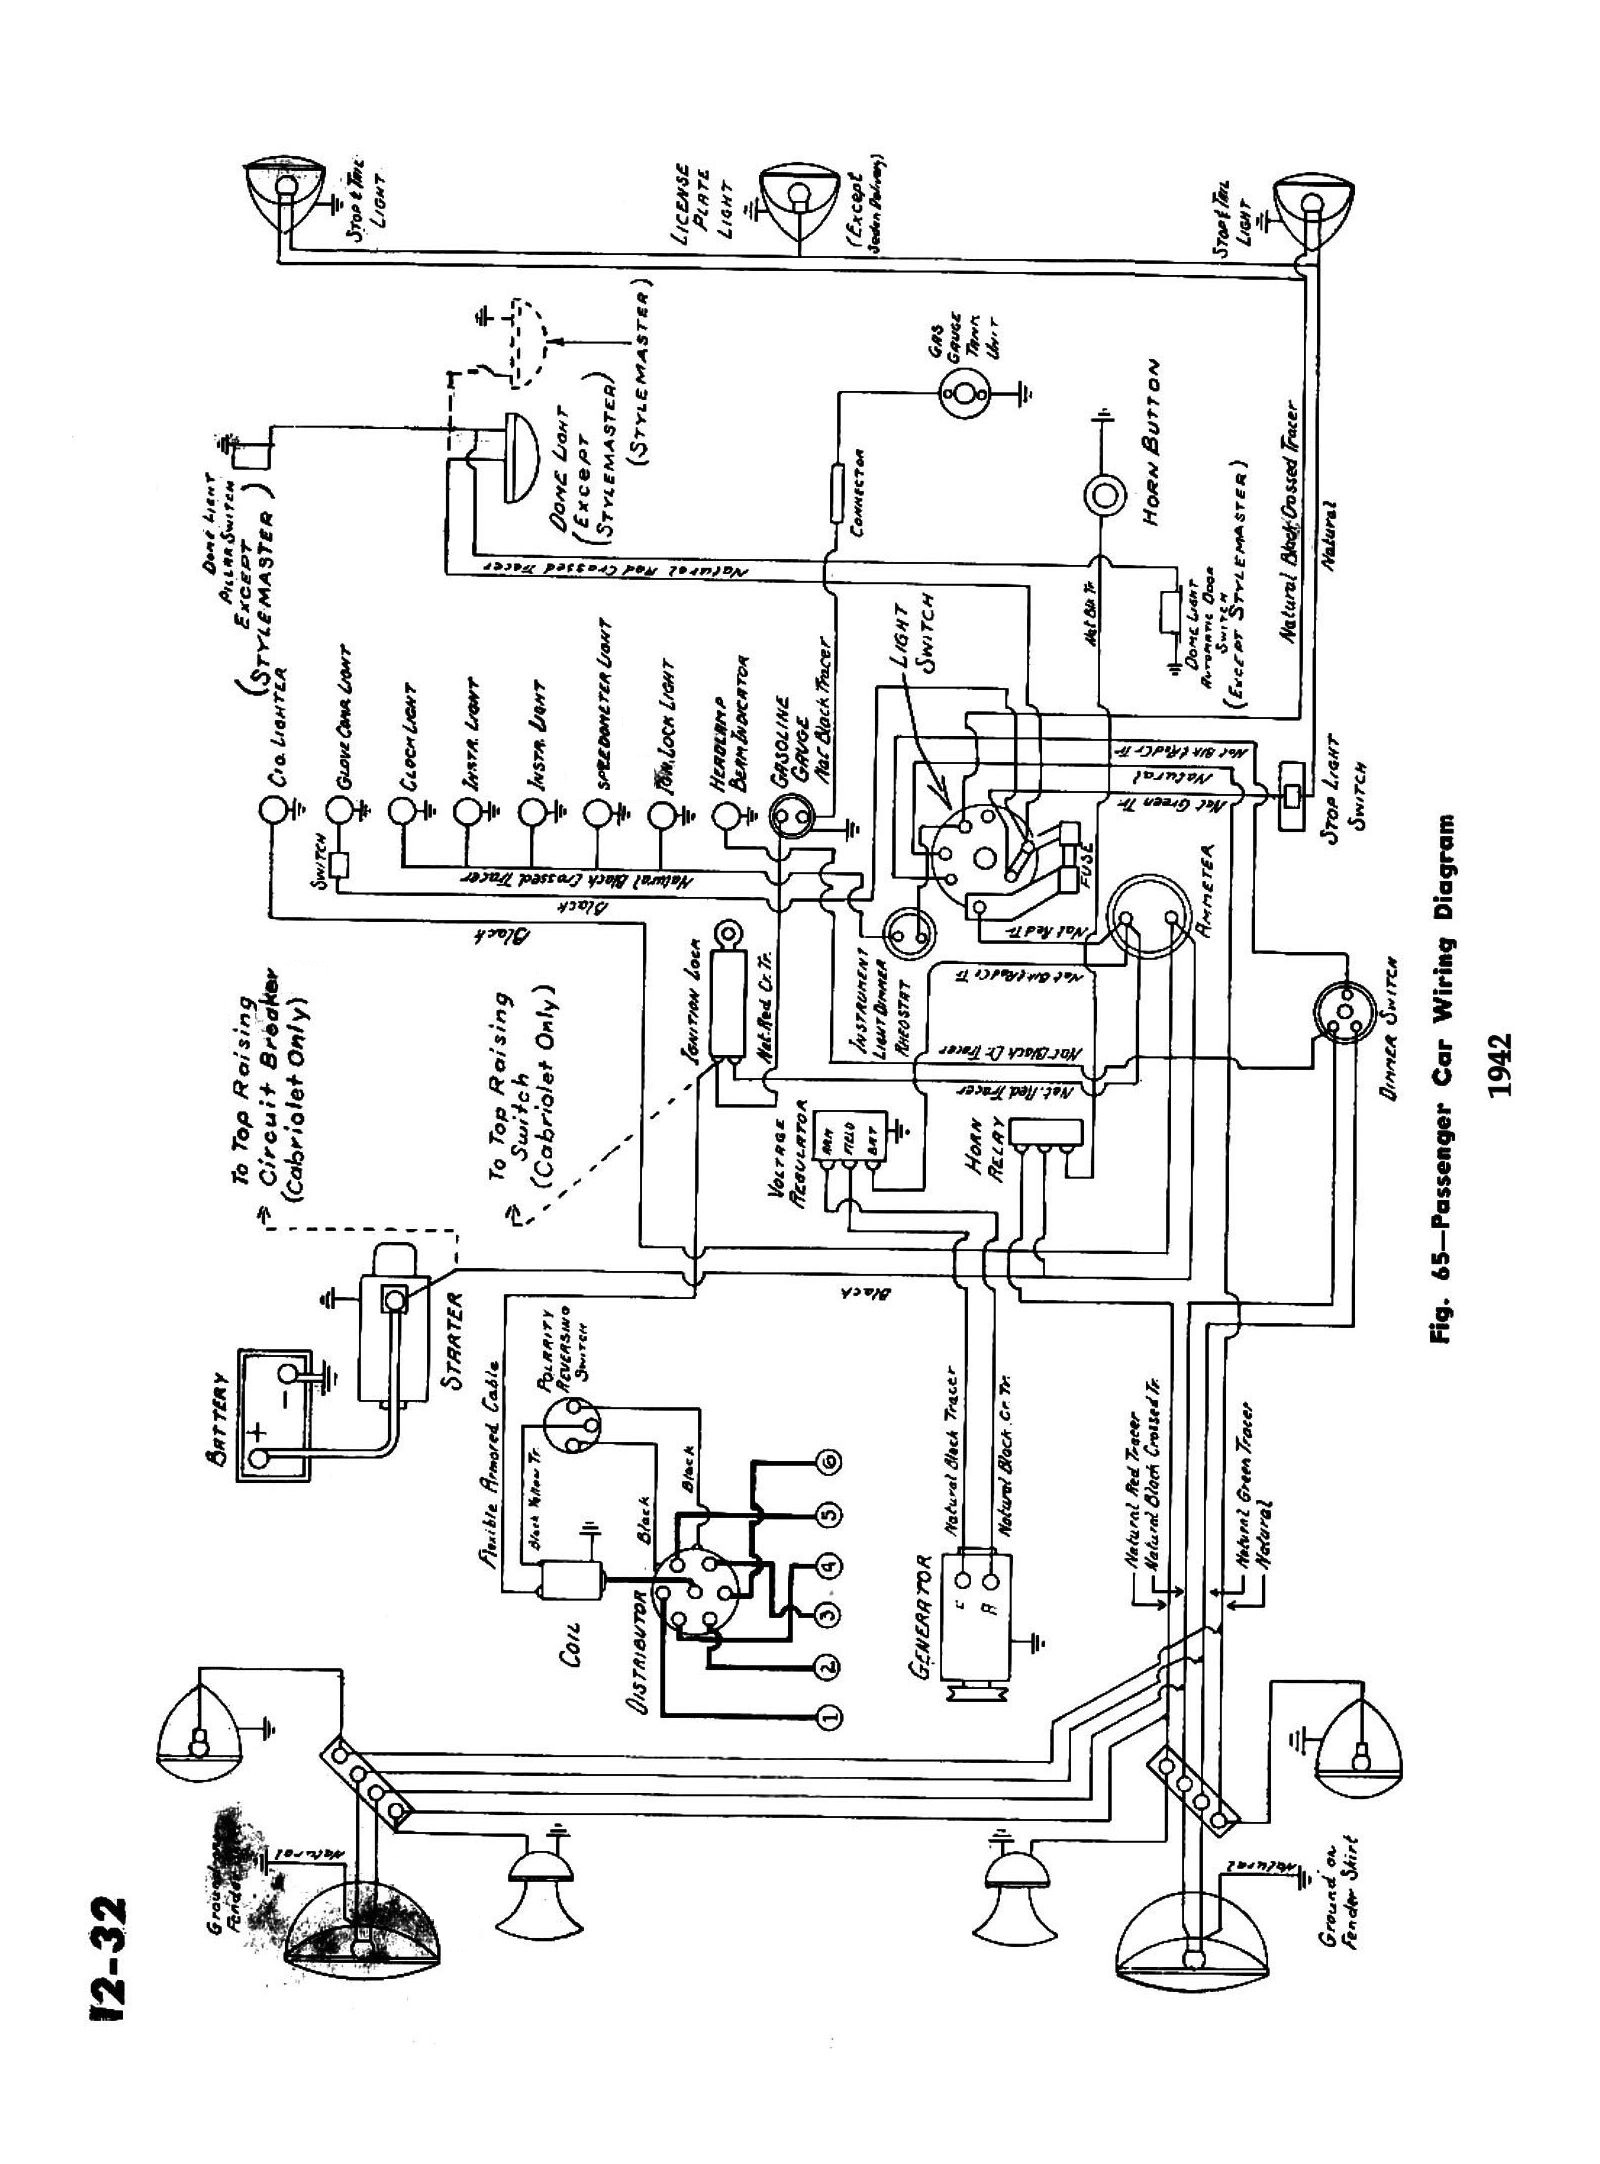 1950 ford pickup wiring harness wiring diagrams user 75 Chevy Alternator Wiring Diagram